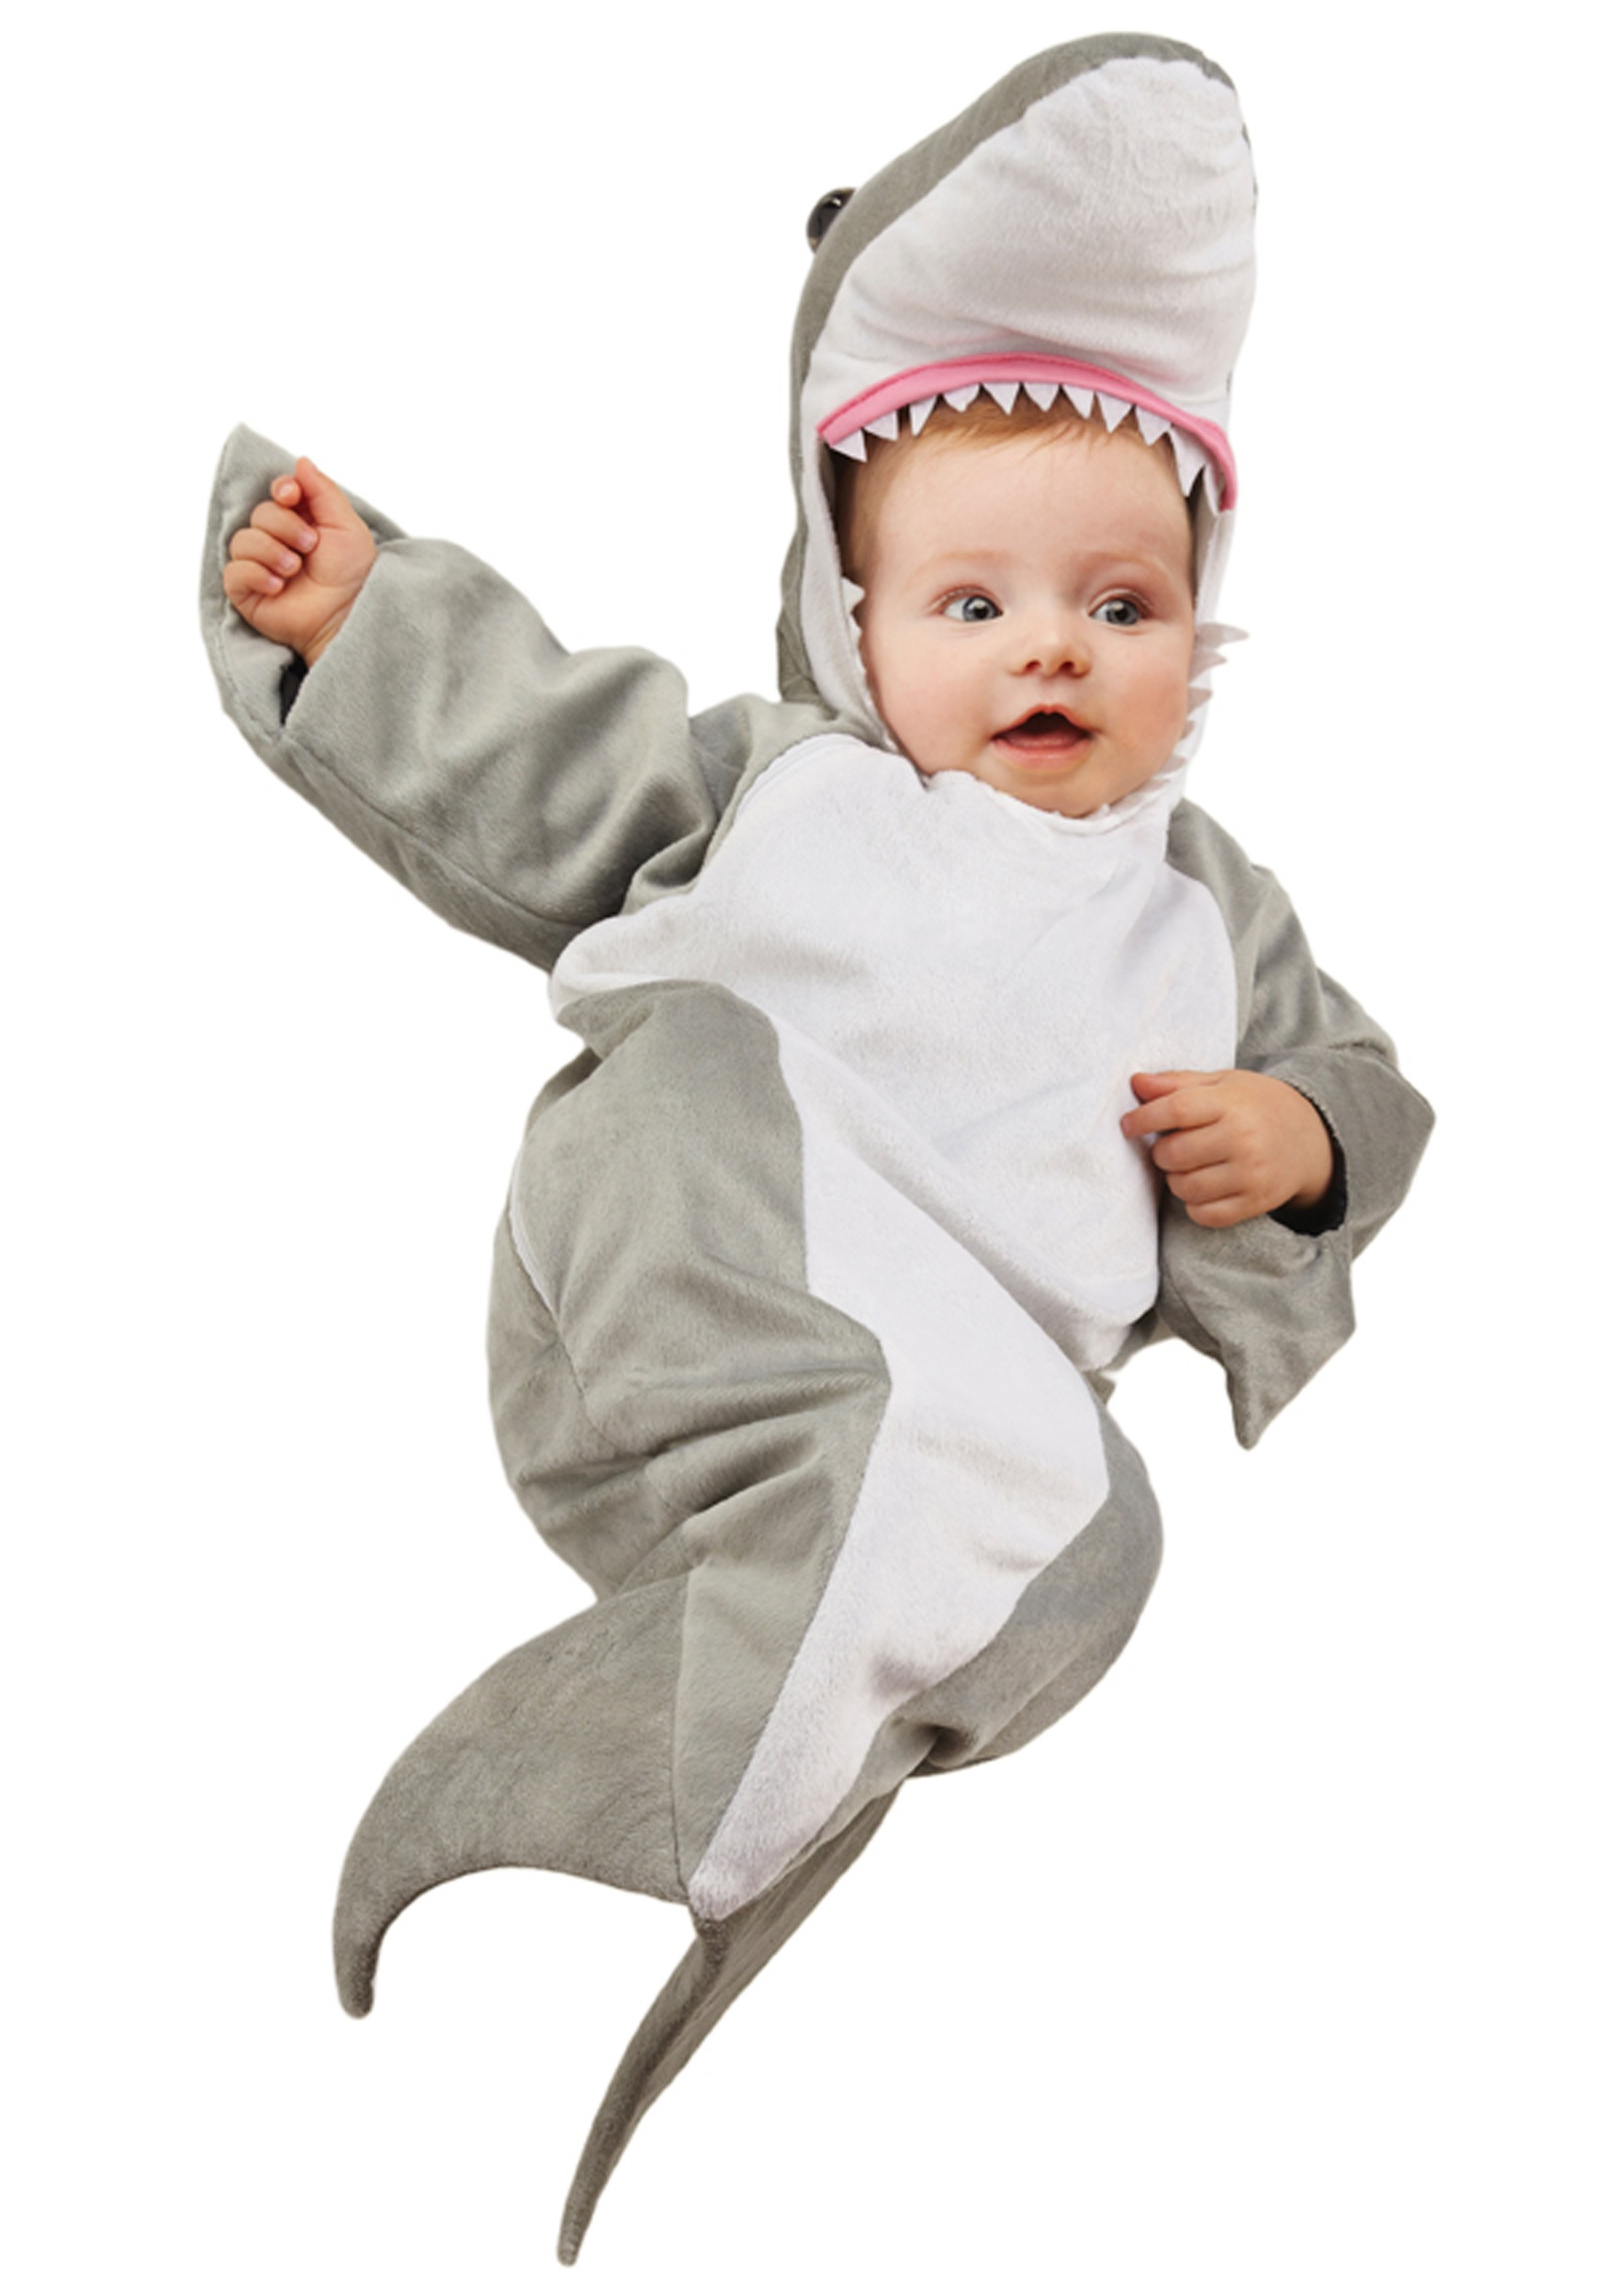 Shark Baby Bunting - Sea Animal Costume Ideas for Kids